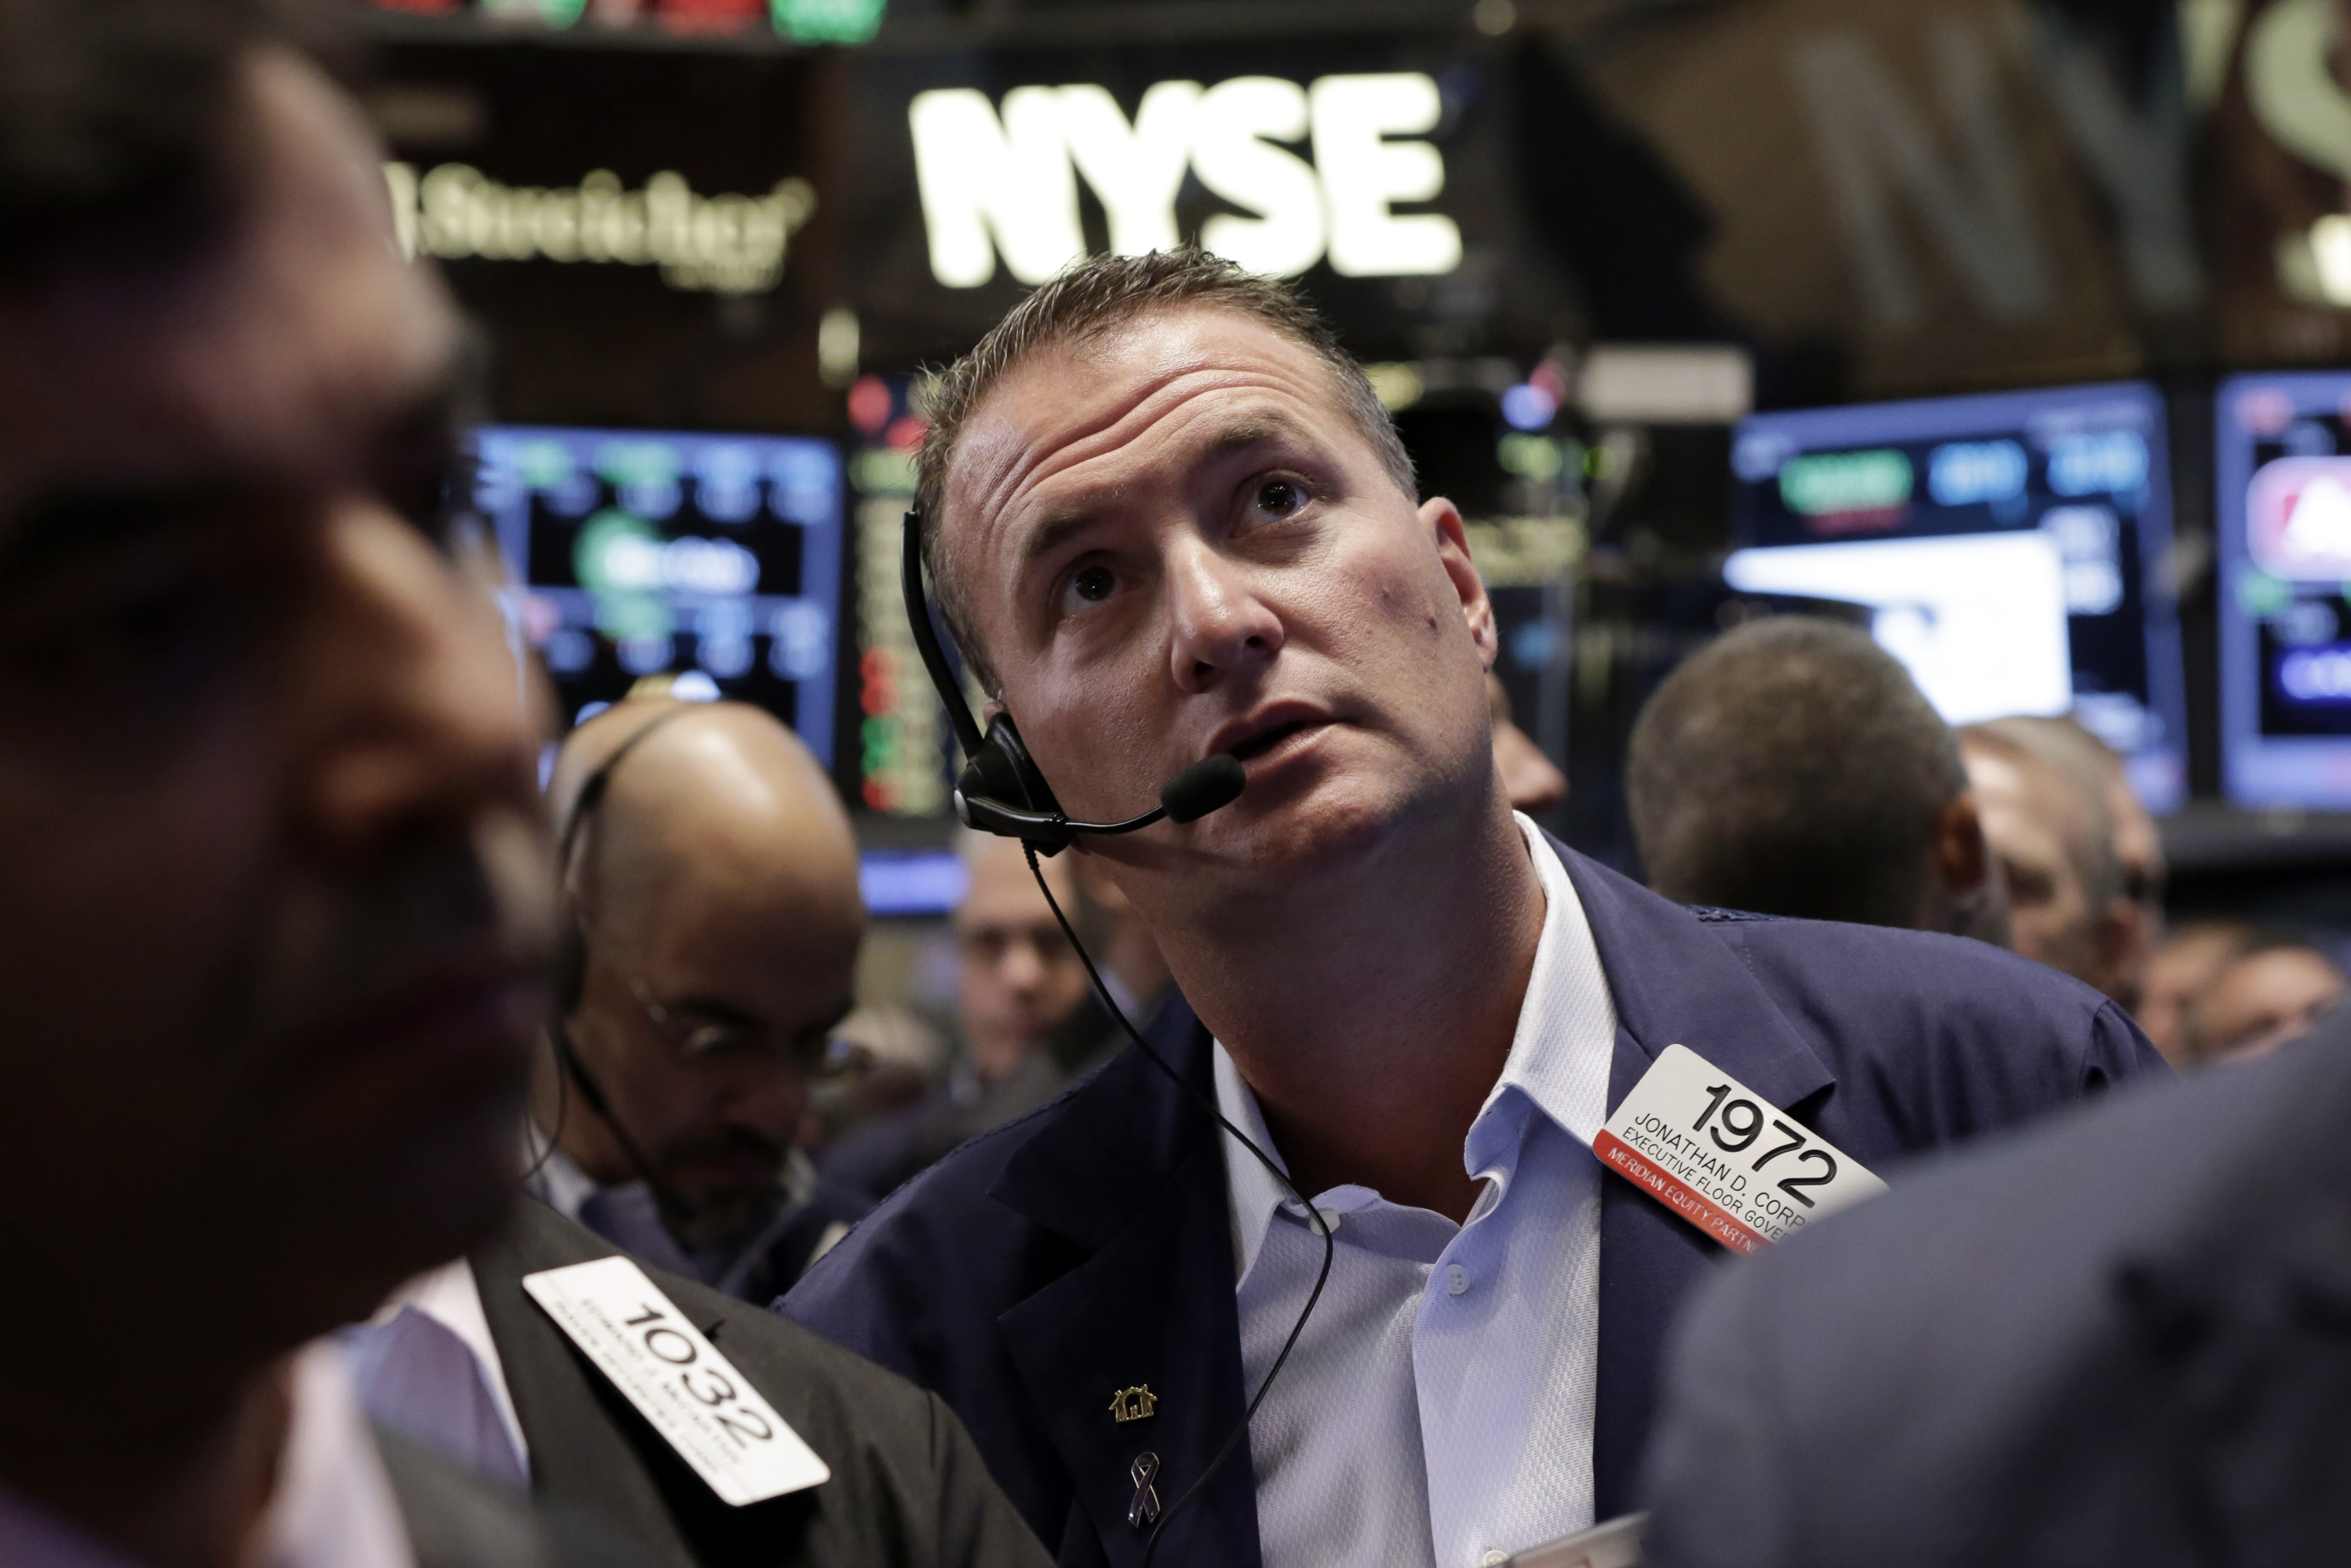 At the New York Stock Exchange, Jonathan Corpina is among the traders on the floor who are welcoming a steadying of the market after last week's big sell-off that negated July's gains.